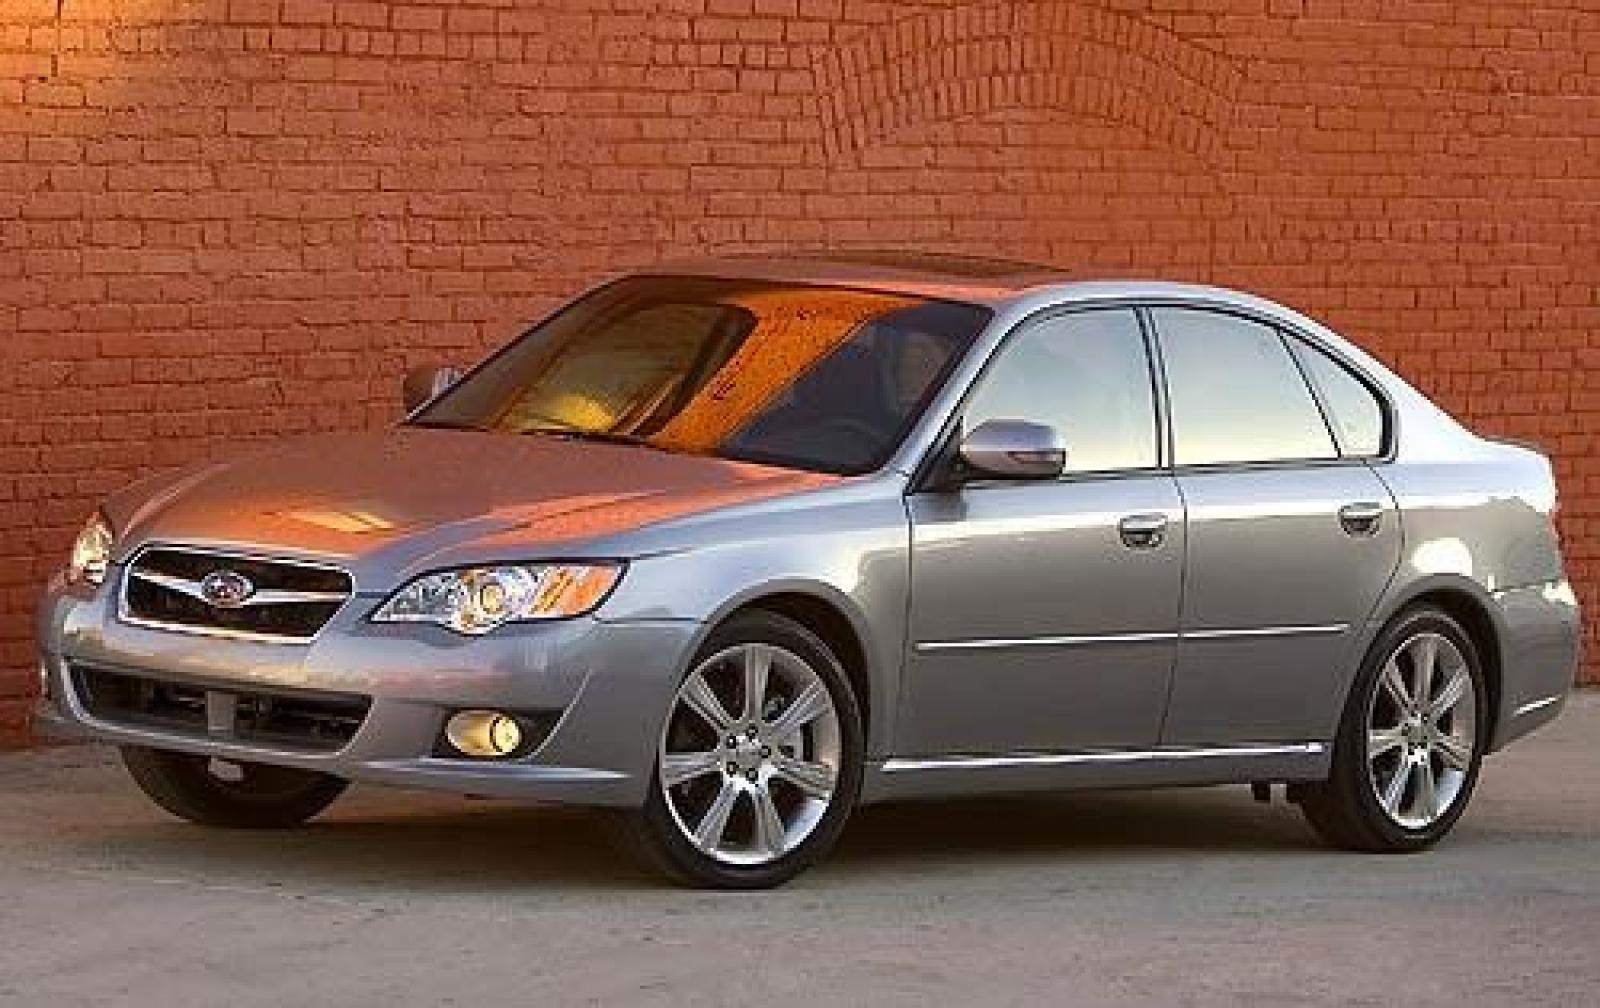 2008 subaru legacy information and photos zombiedrive. Black Bedroom Furniture Sets. Home Design Ideas